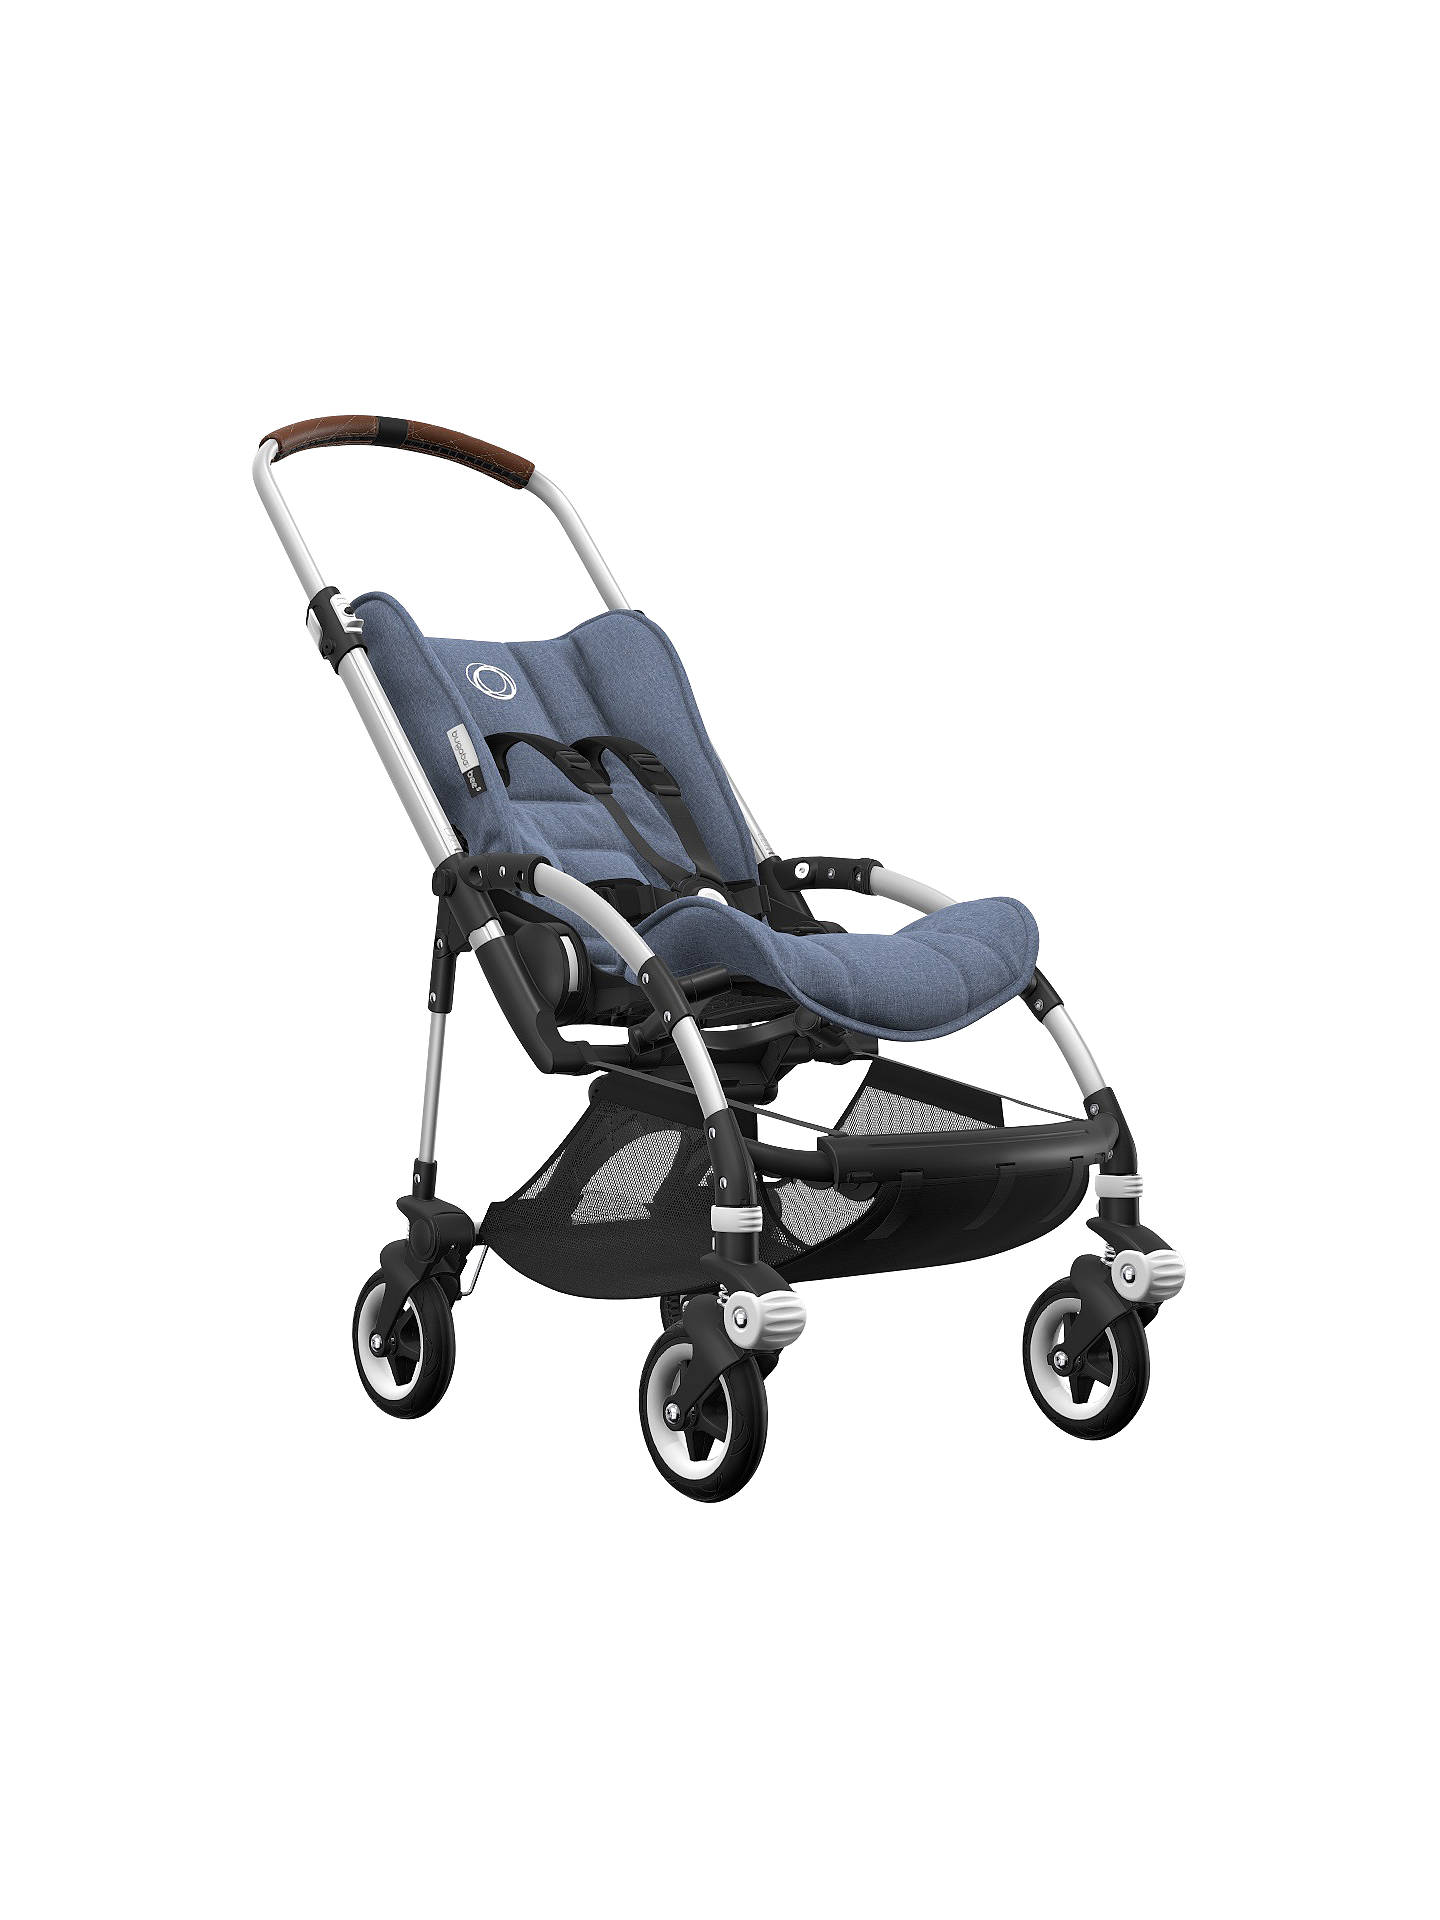 BuyBugaboo Bee5 Complete Pushchair, Aluminium with Cognac Handles and Blue Melange Fabric Online at johnlewis.com